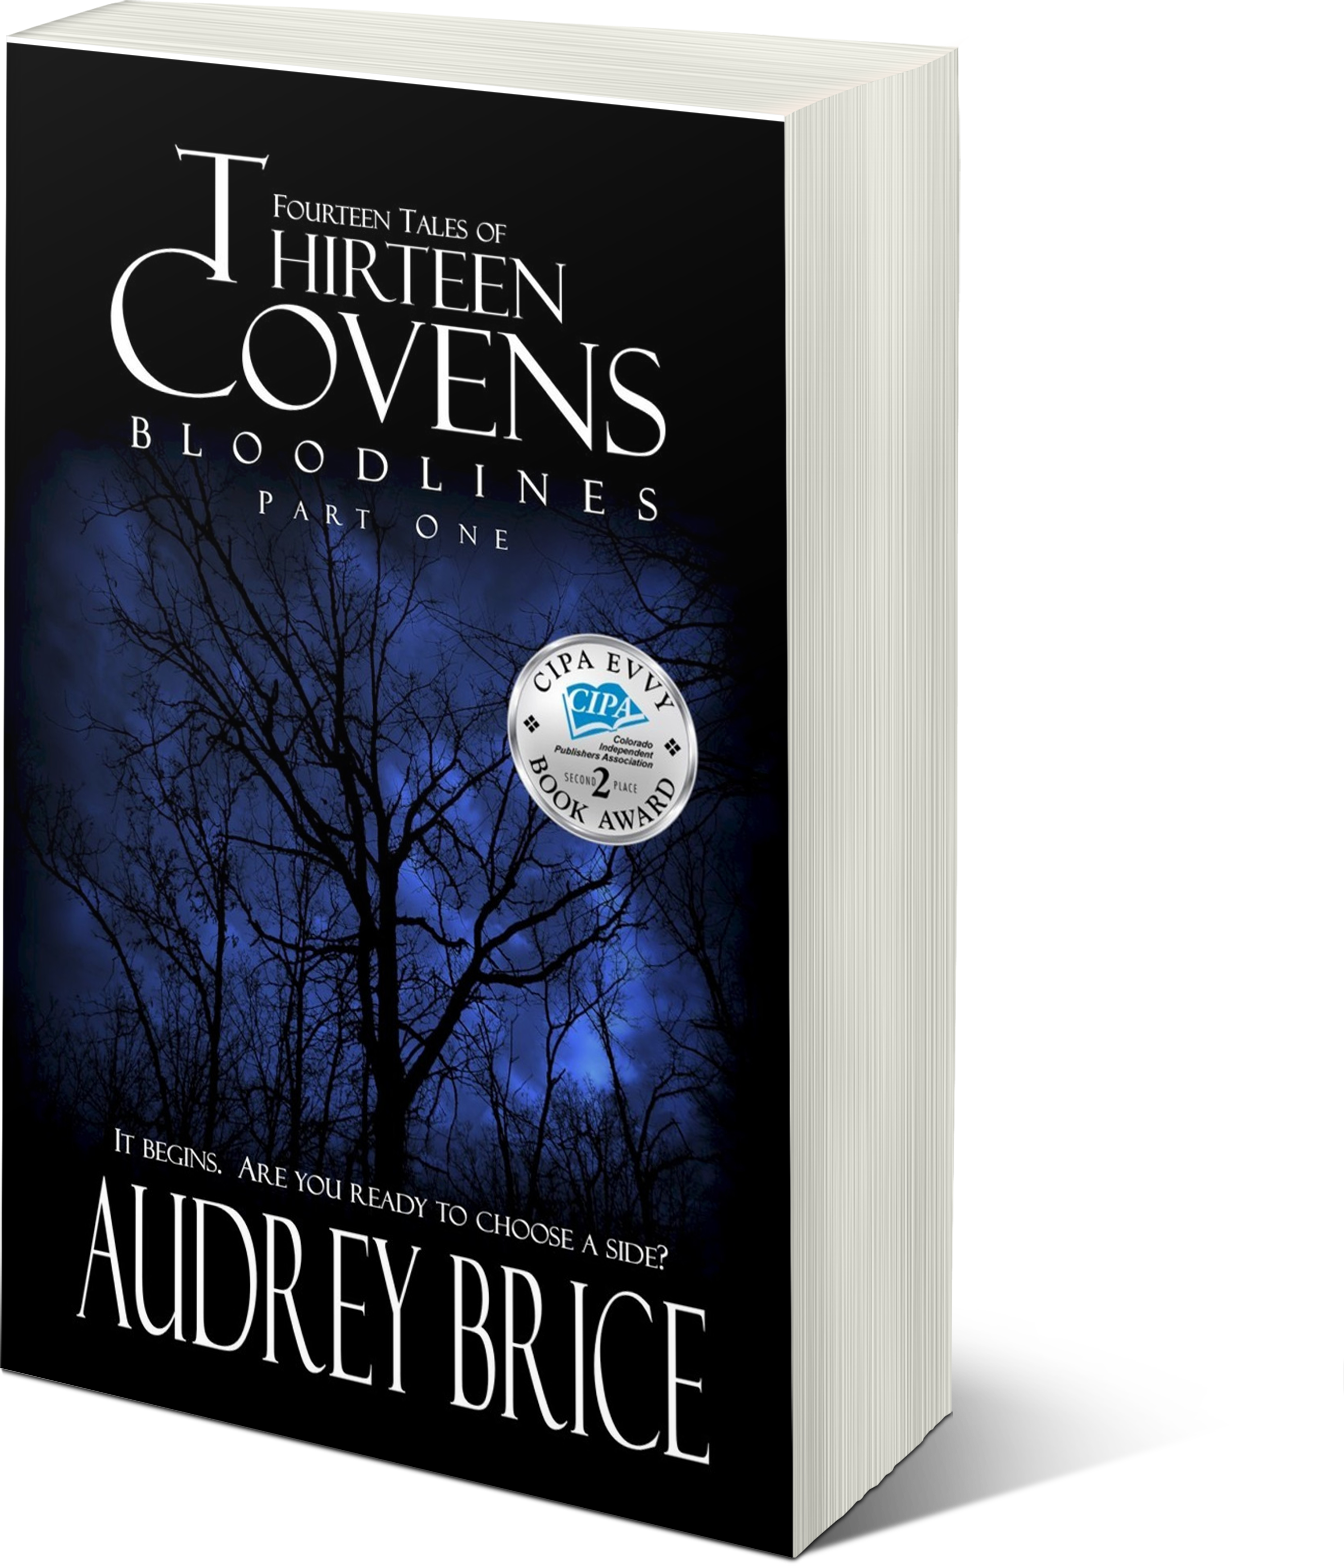 Thirteen Covens has won an EVVY Award!